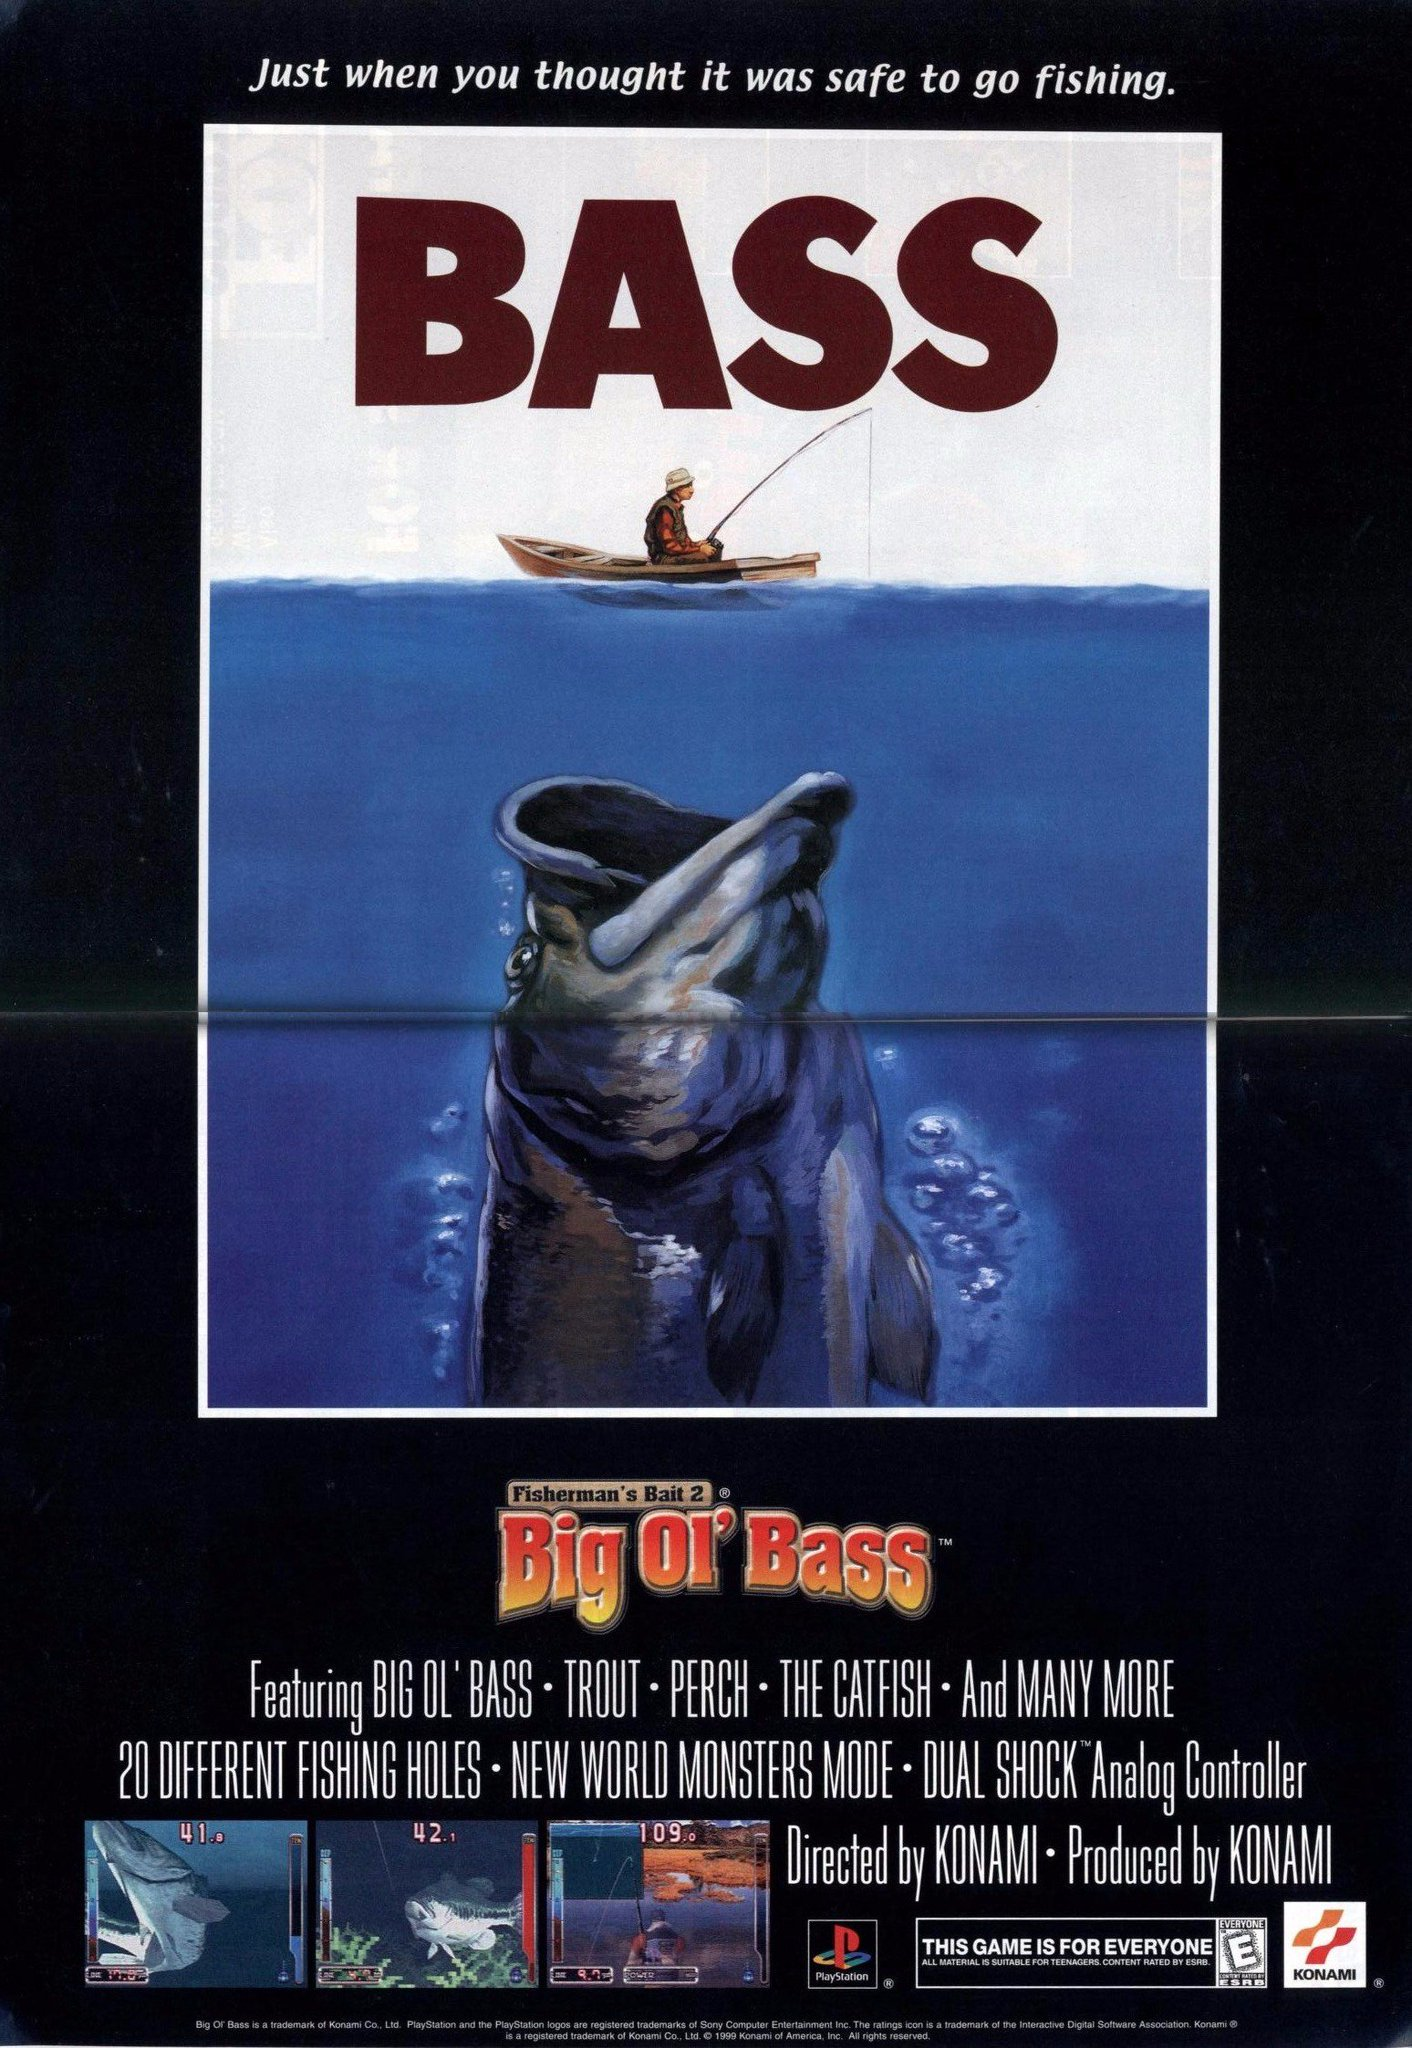 Retro Game Geeks On Twitter Fisherman S Bait 2 Here S The Jaws Inspired North American Ad For The 1999 Ps1 Fishing Game Retrogaming Playstation Fishing 90s Gaming Https T Co Vfqxvullju